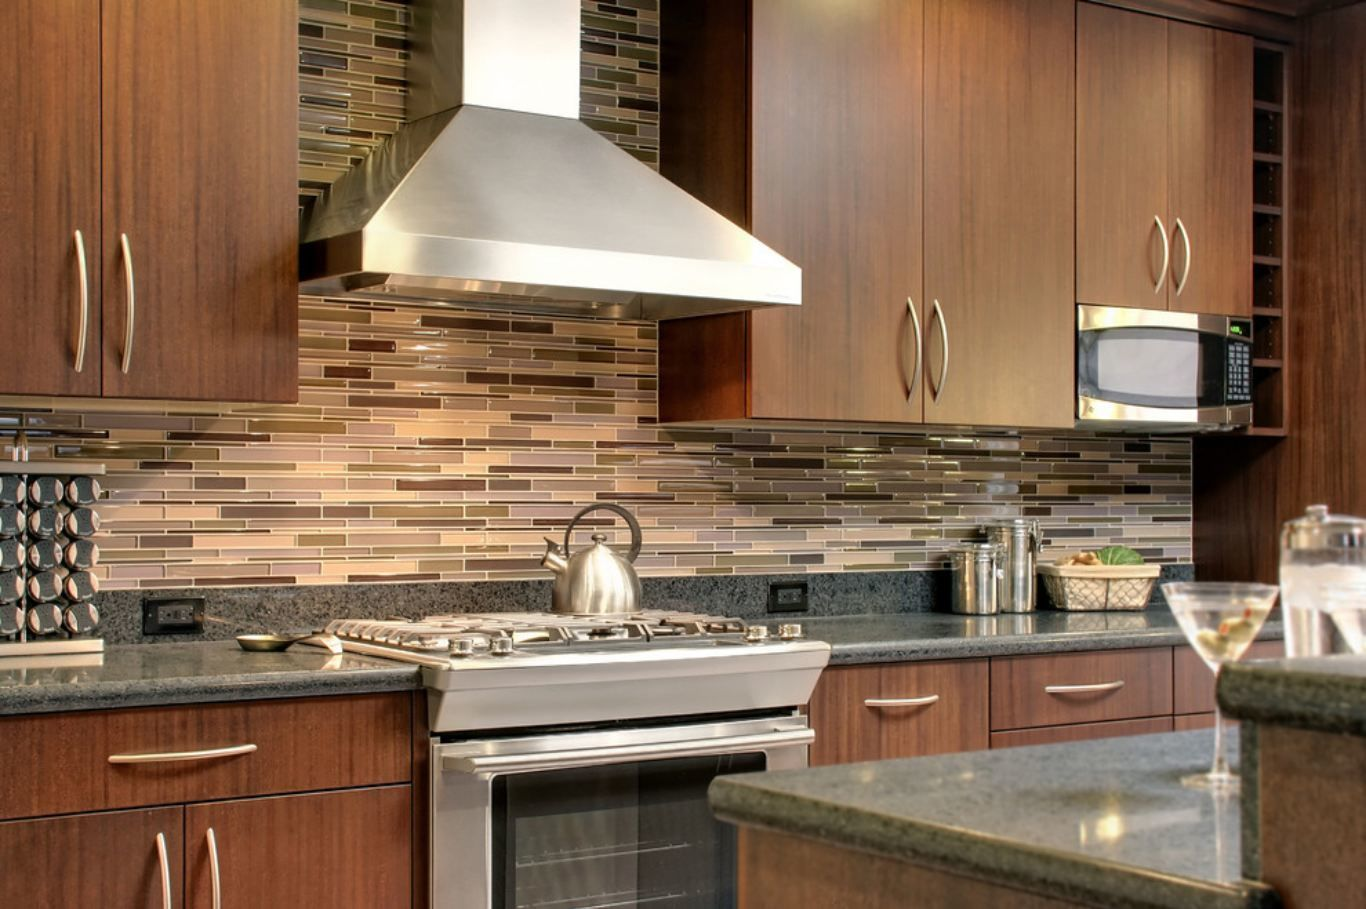 Glass Tile Kitchen Backsplash with with Stainless Steel